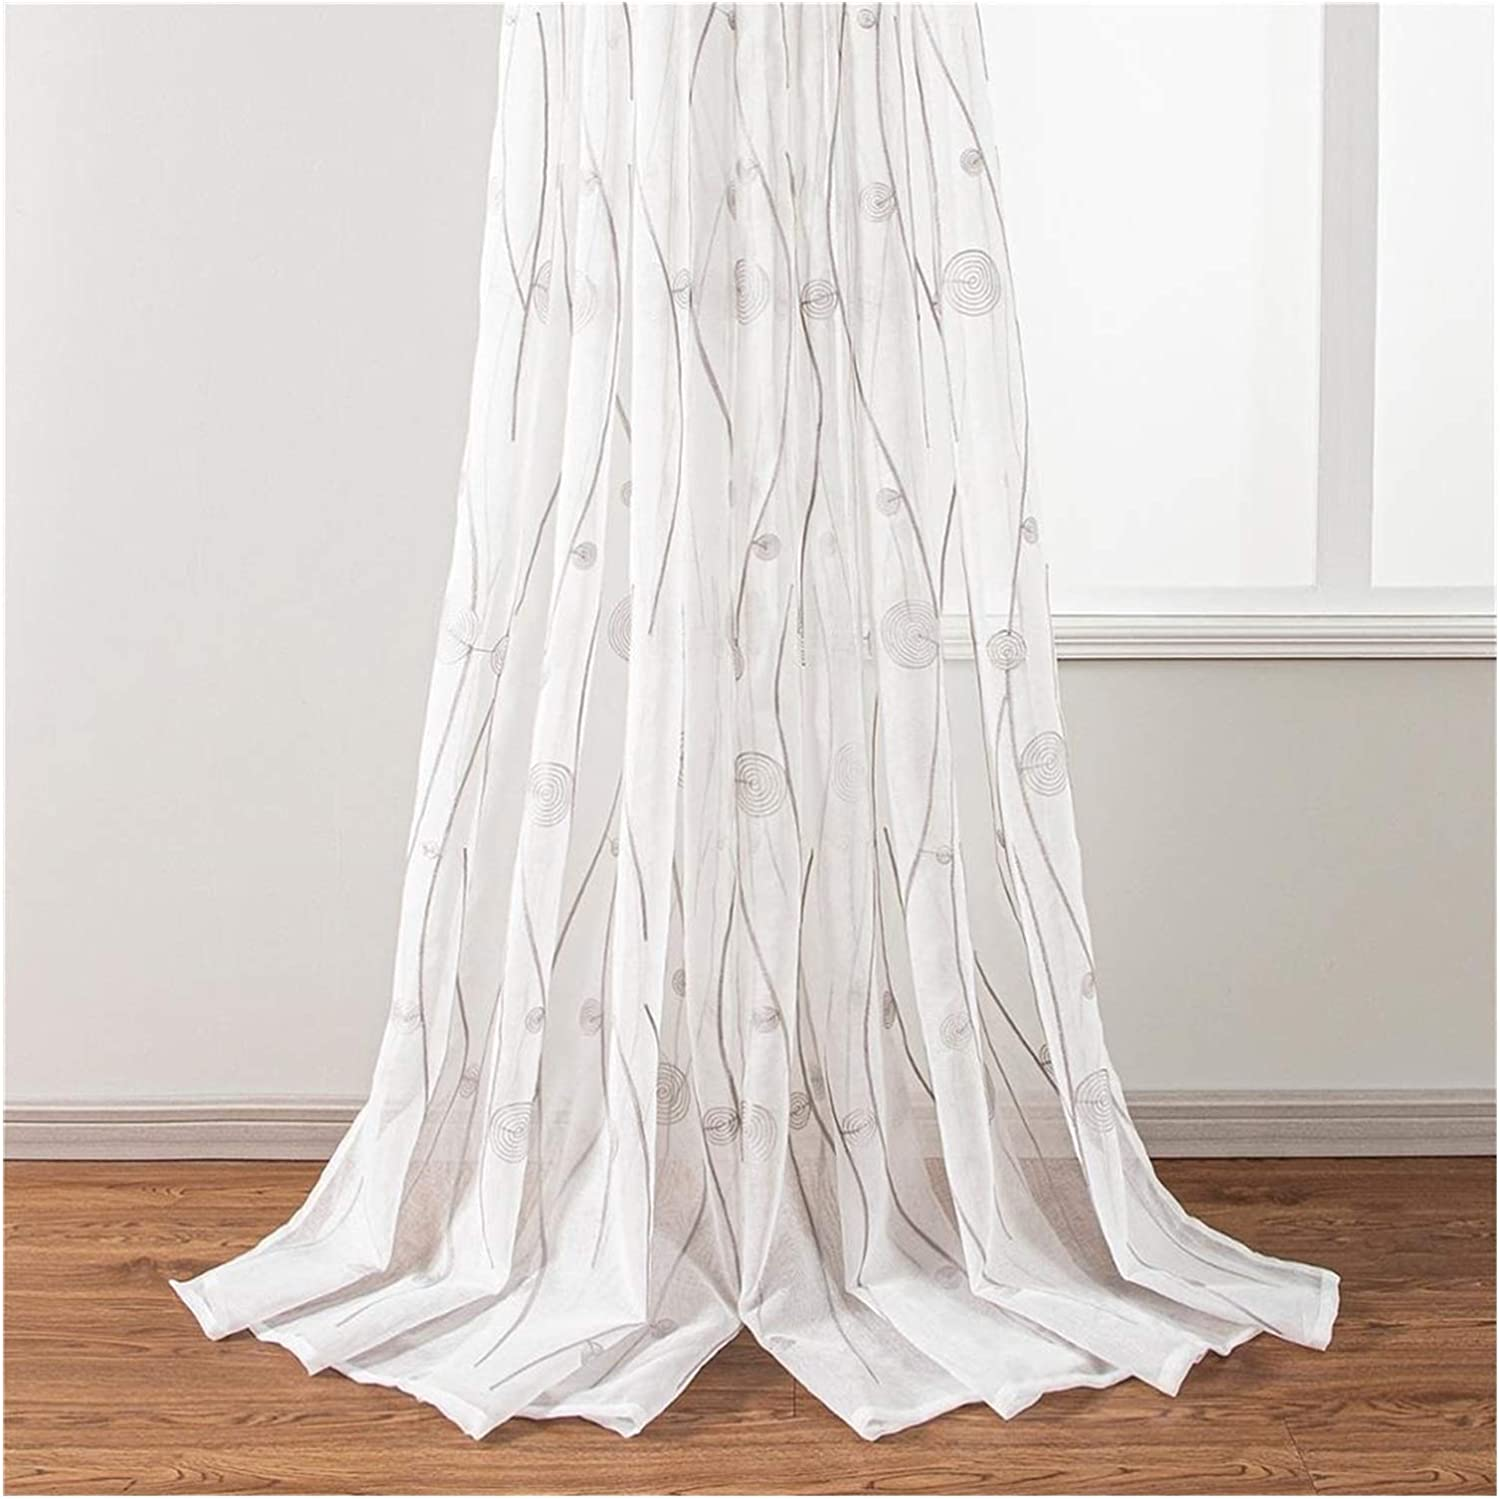 YANGDONG Translucent Tulle Curtains Patio Sole In stock Ring Do 70% OFF Outlet